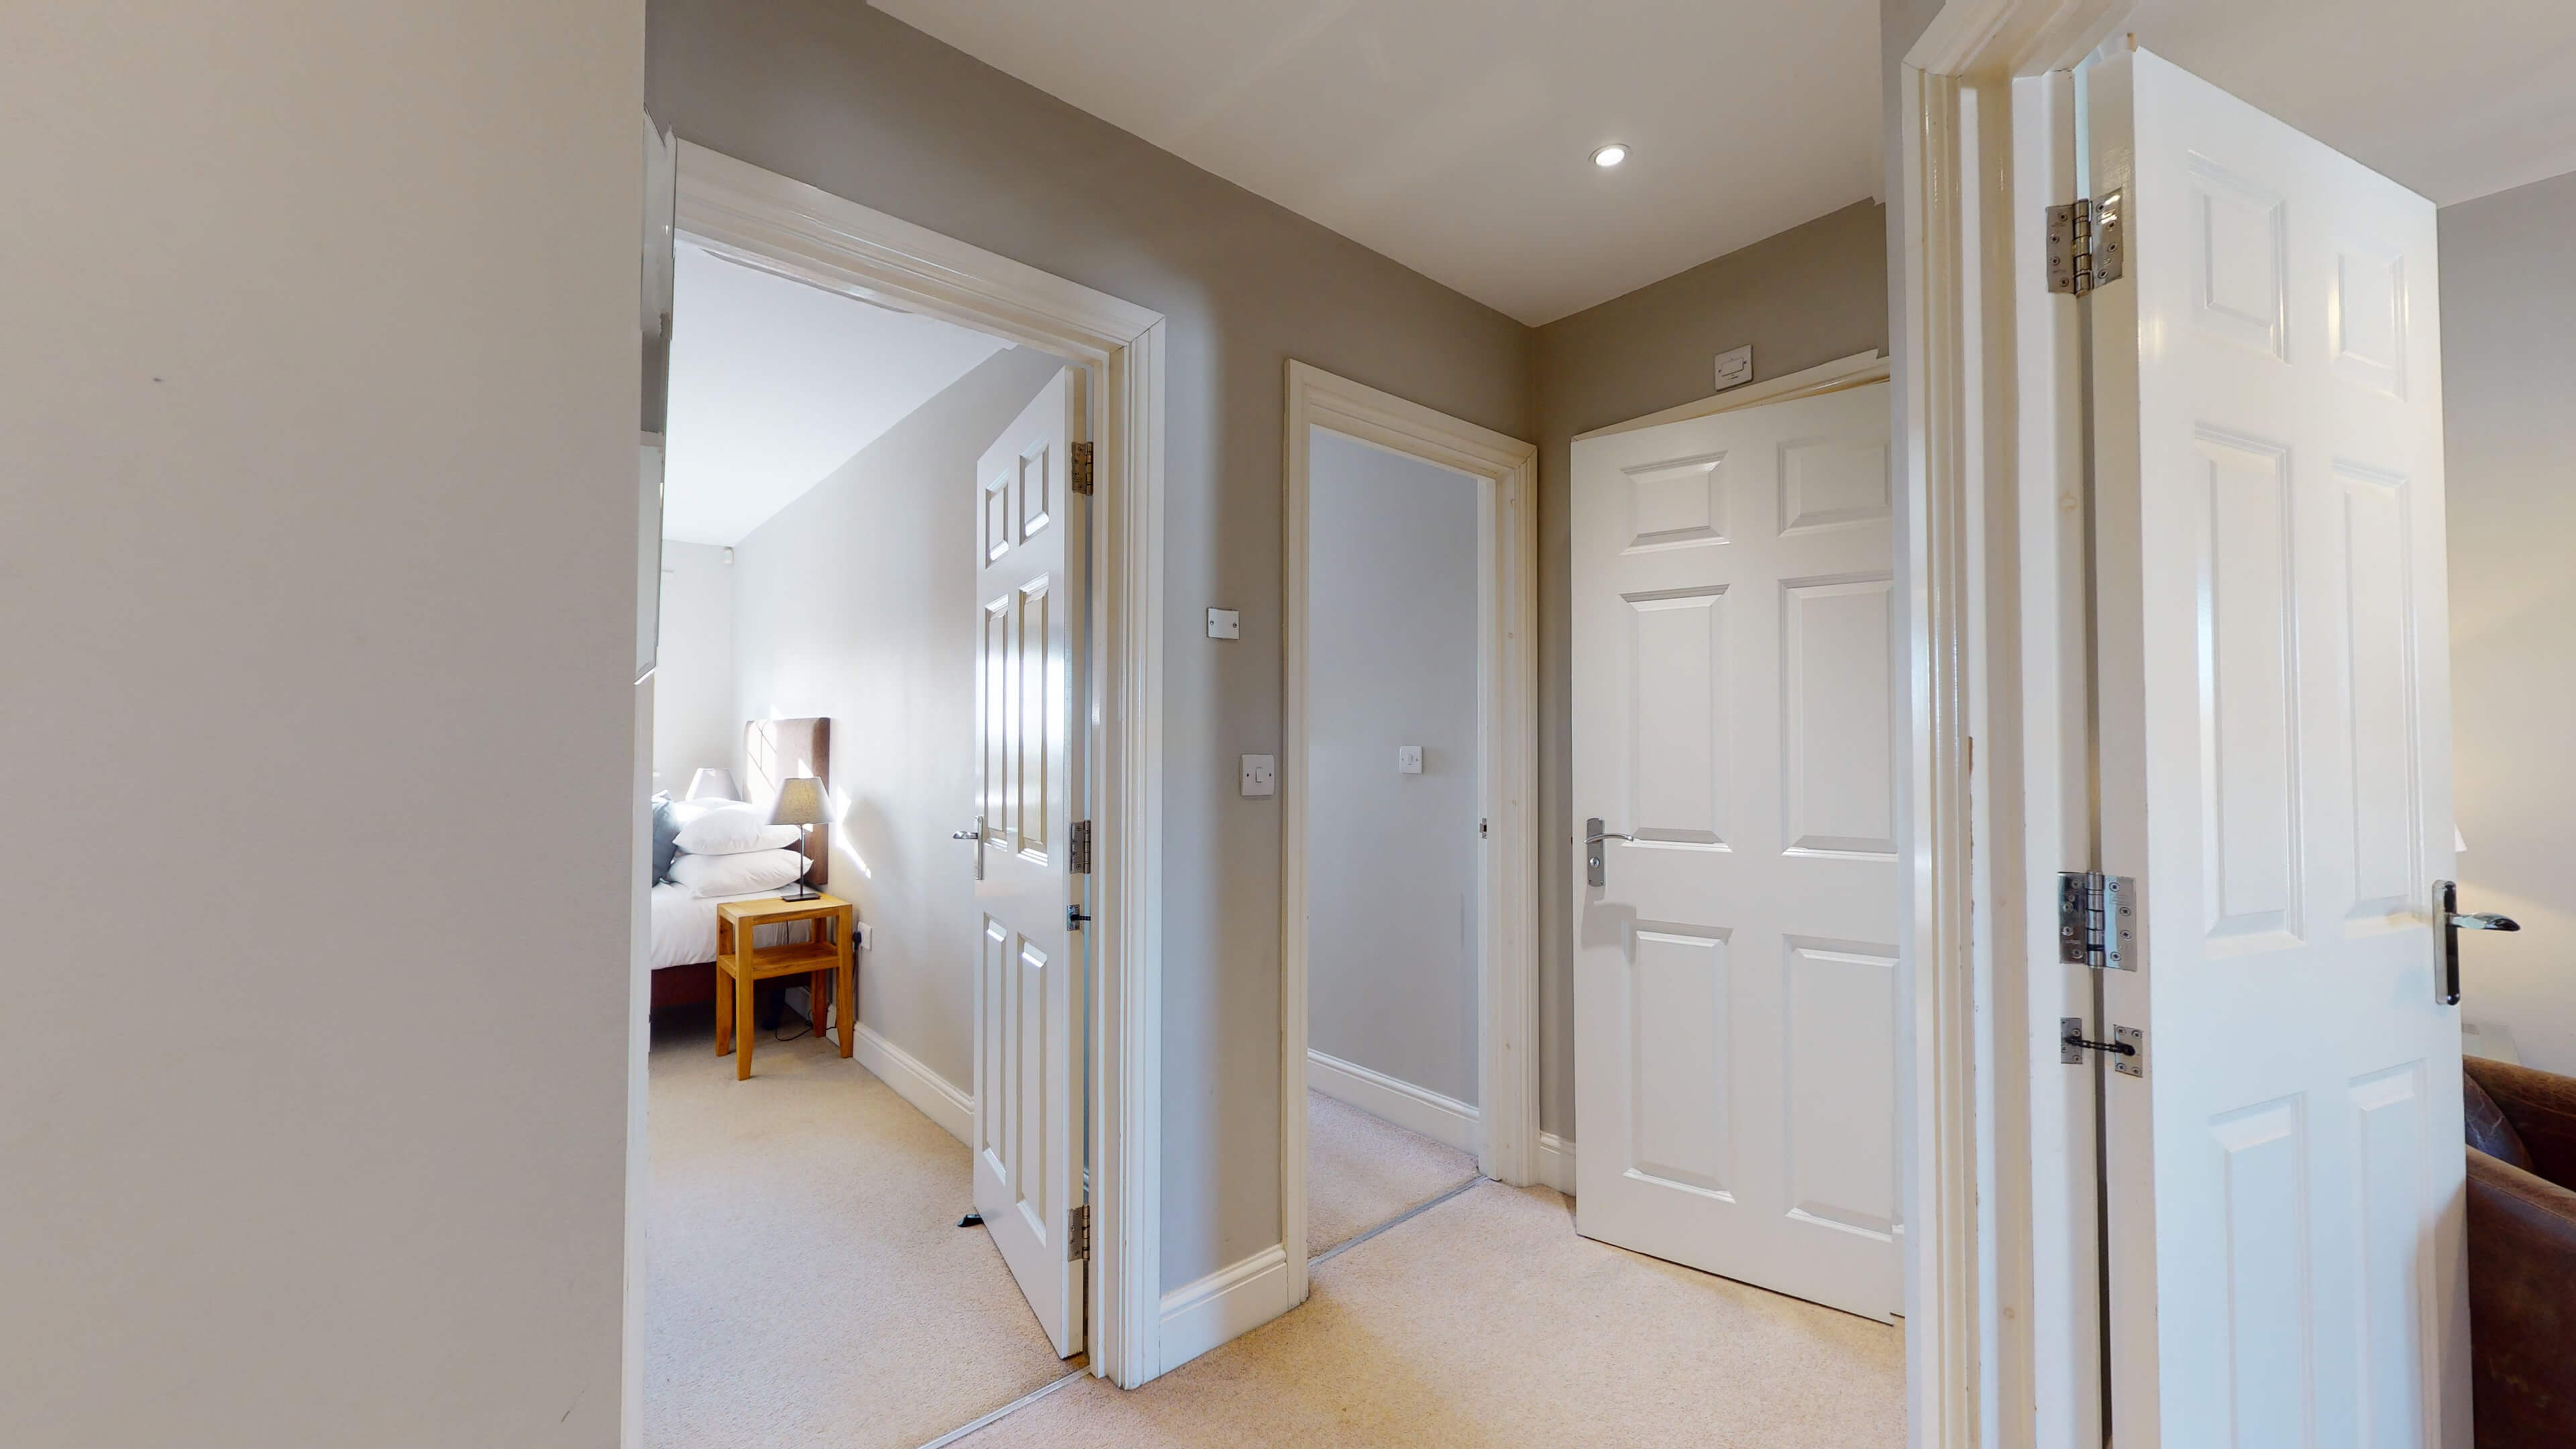 The Churchill Suite Furnished Oxford Apartment Churchill Suite Oxford Furnished Apartment21